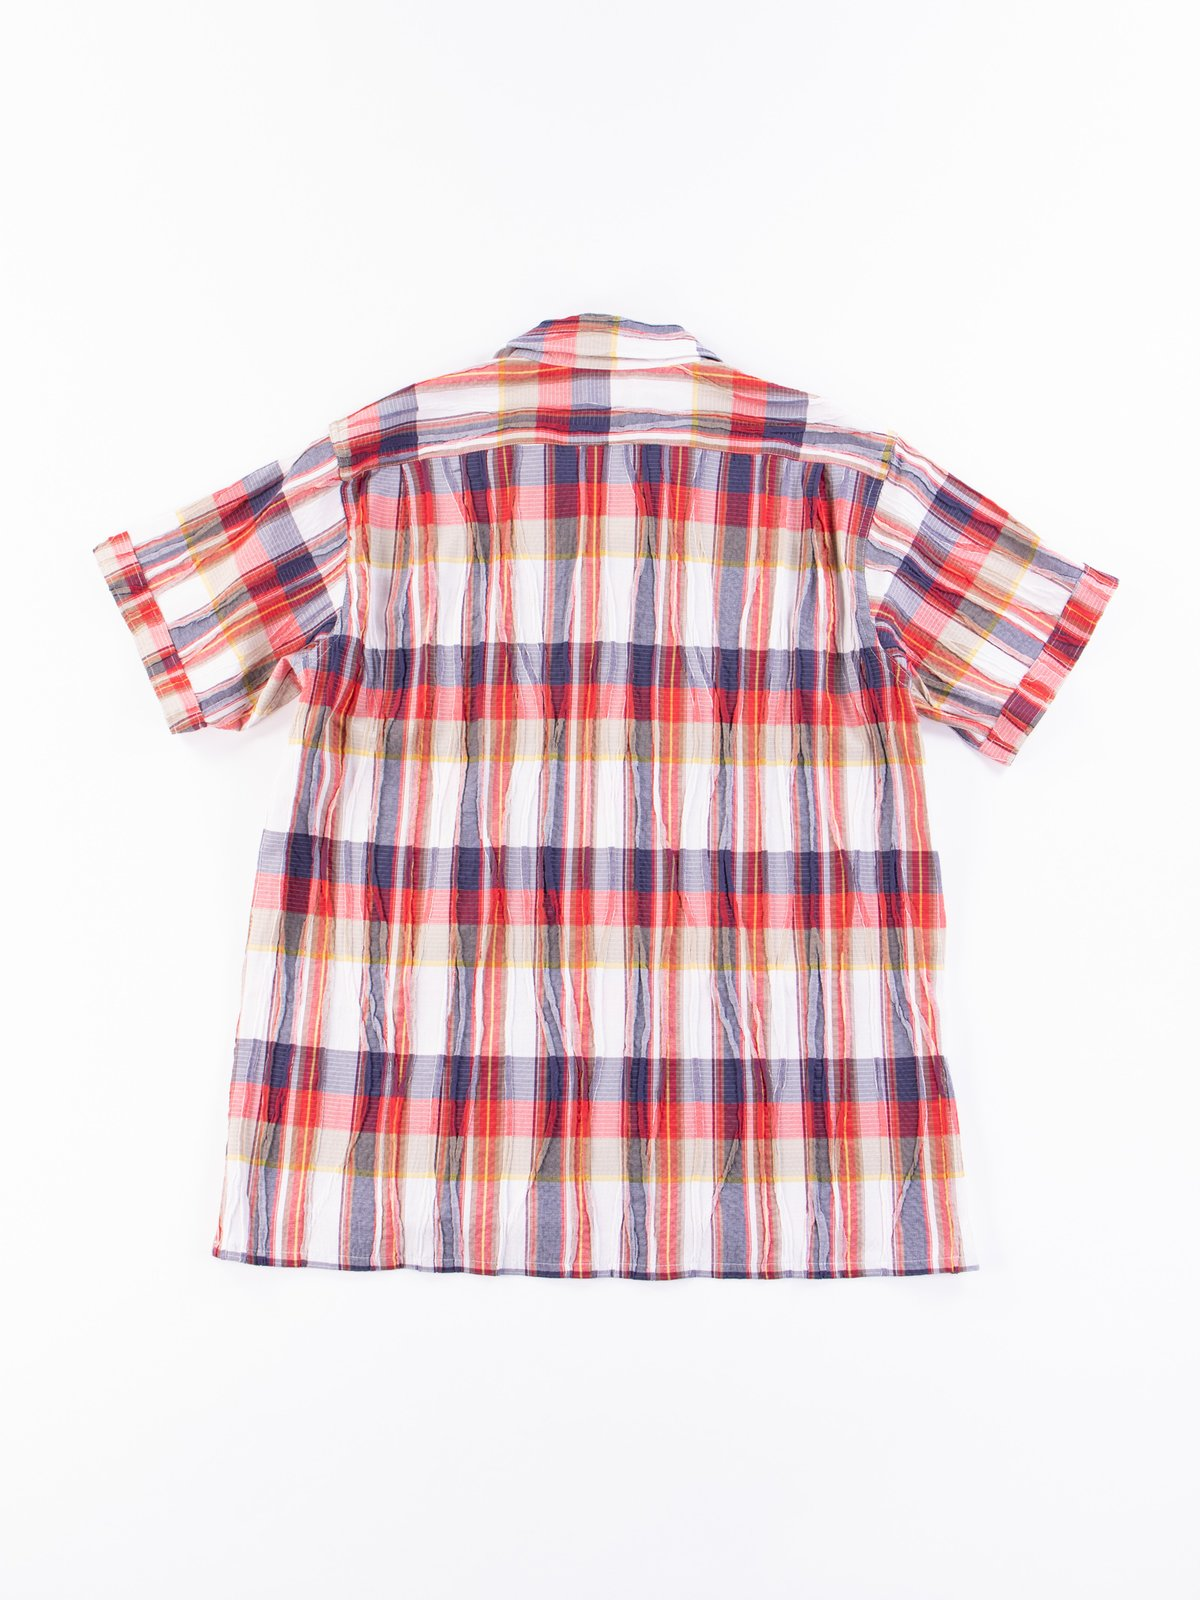 Red/White Cotton Crepe Check Camp Shirt - Image 6